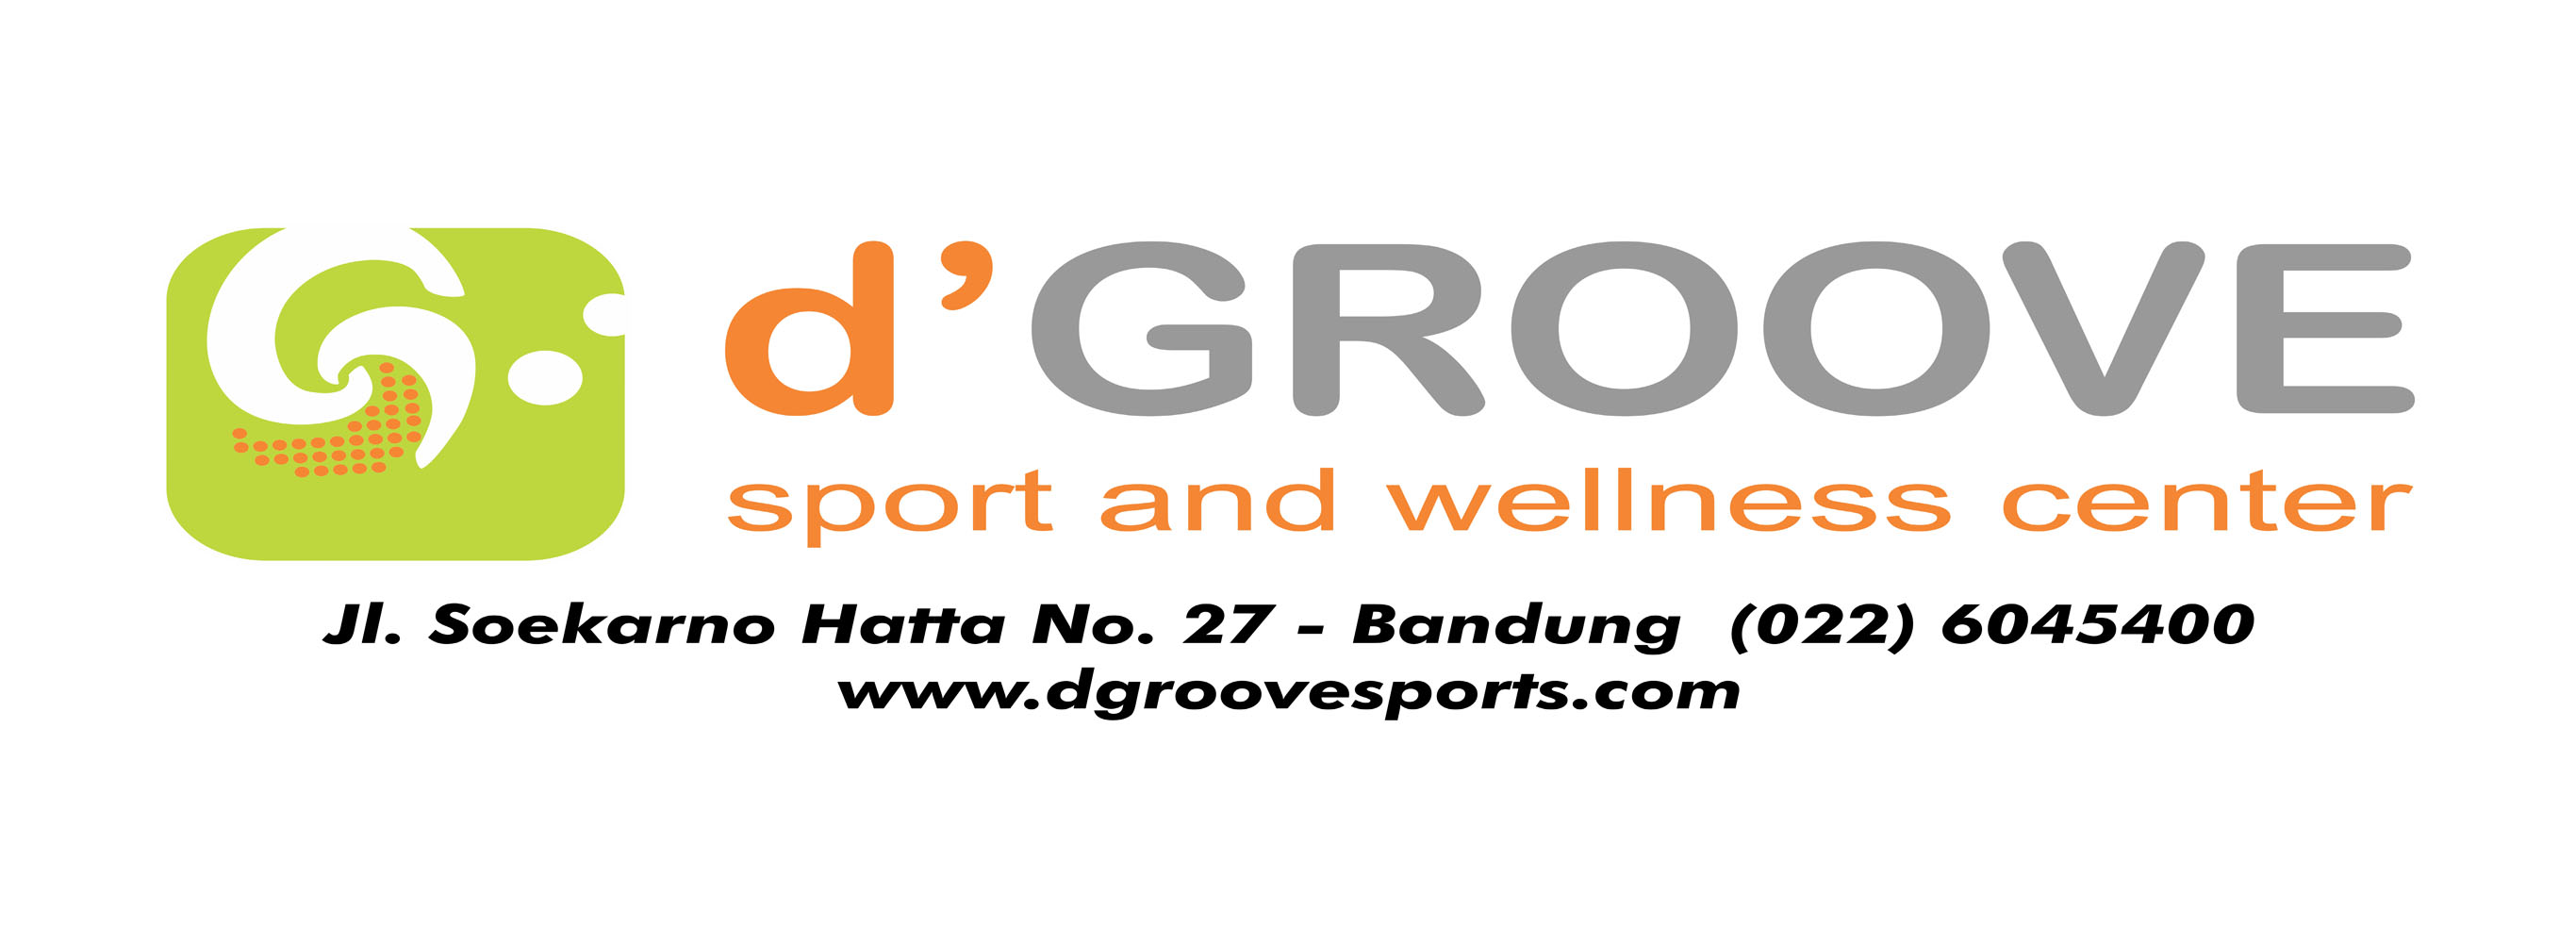 dgroove sport and wellness center